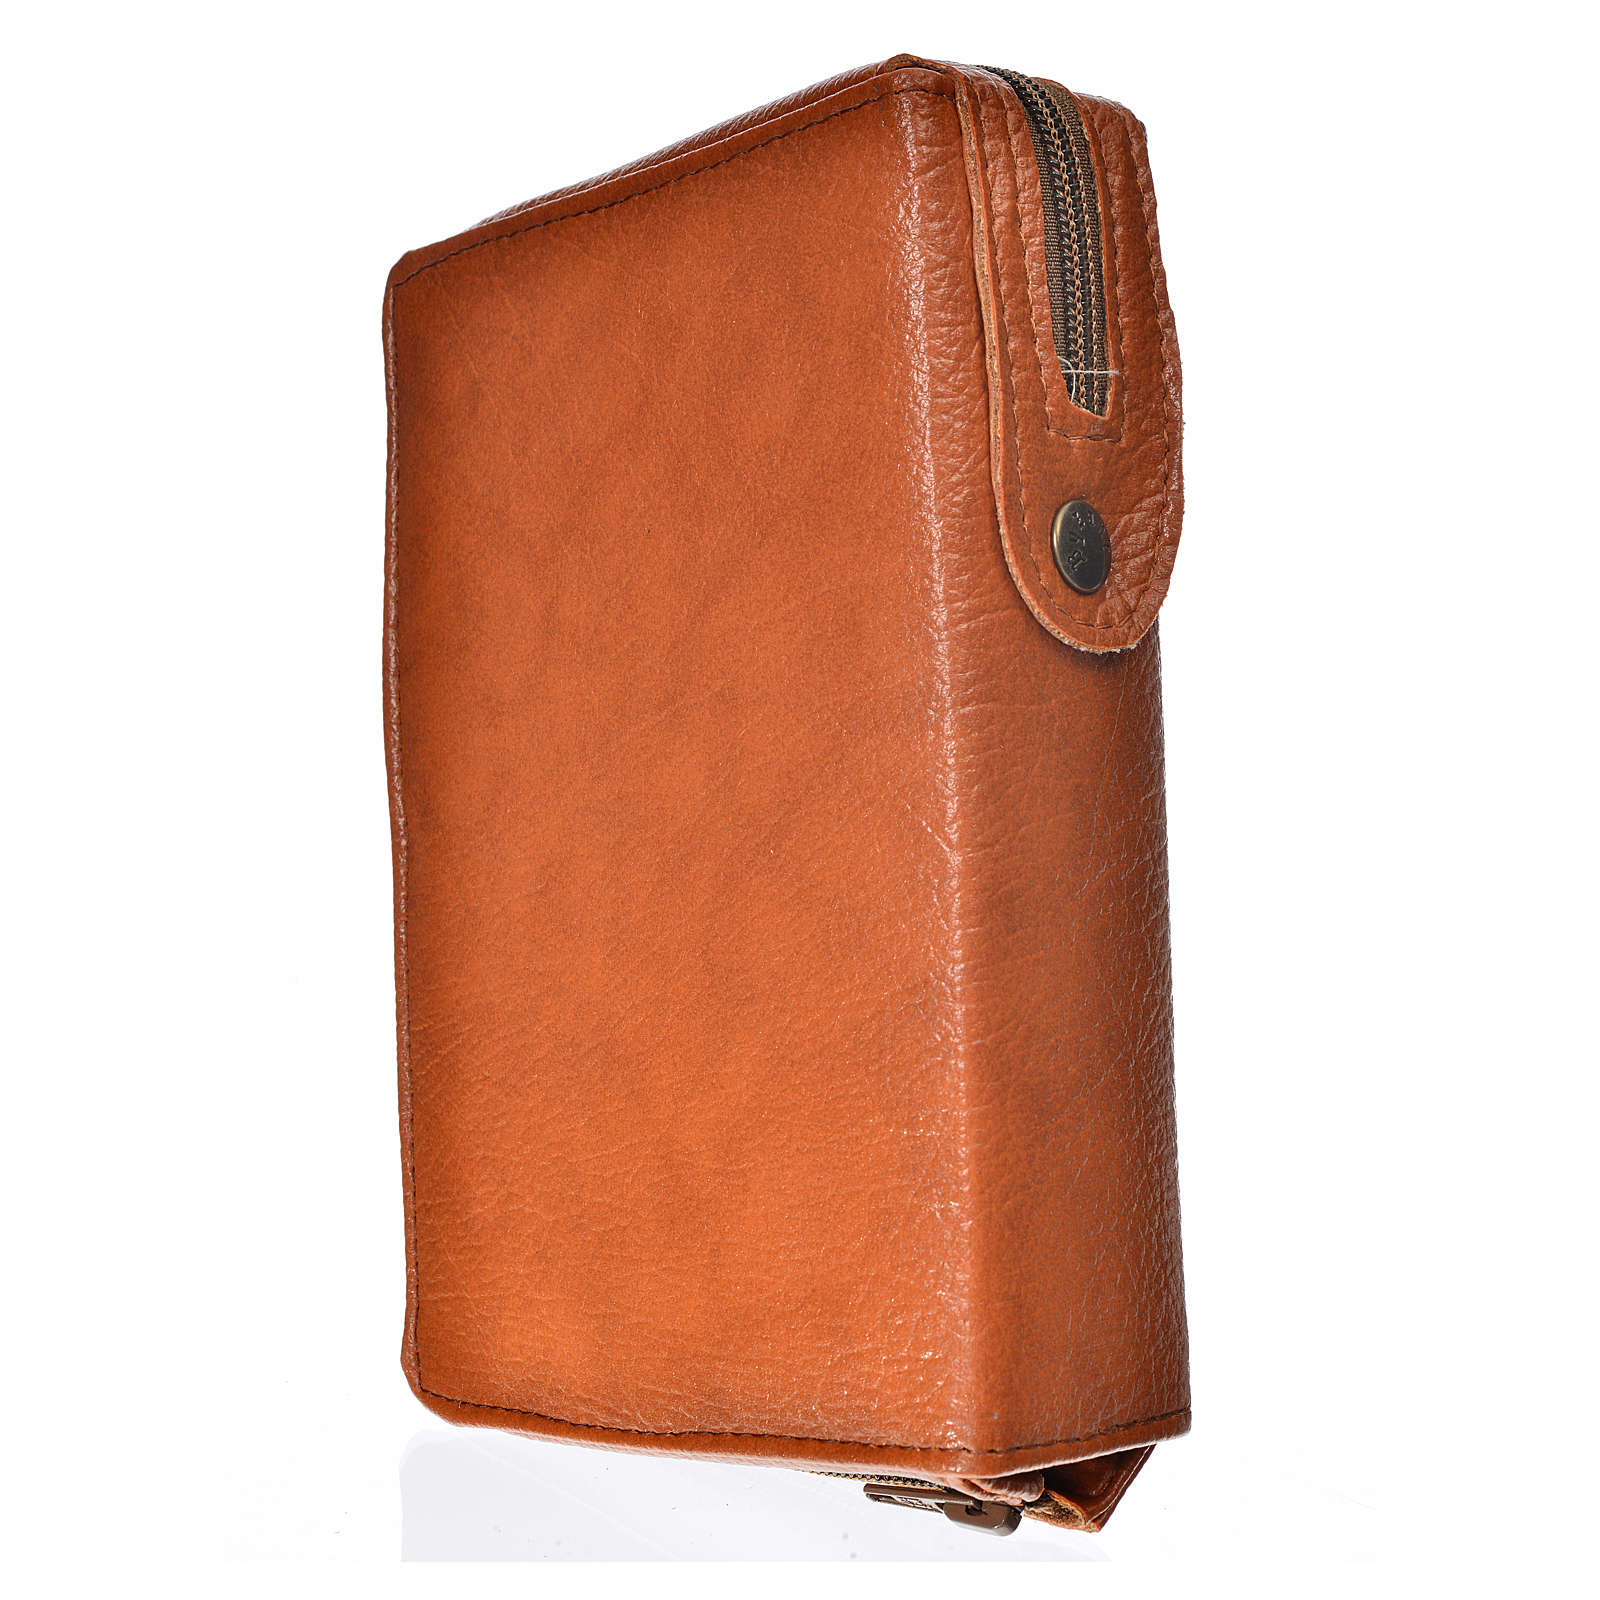 New Jerusalem Bible hardcover brown bonded leather with Holy Trinity image 4